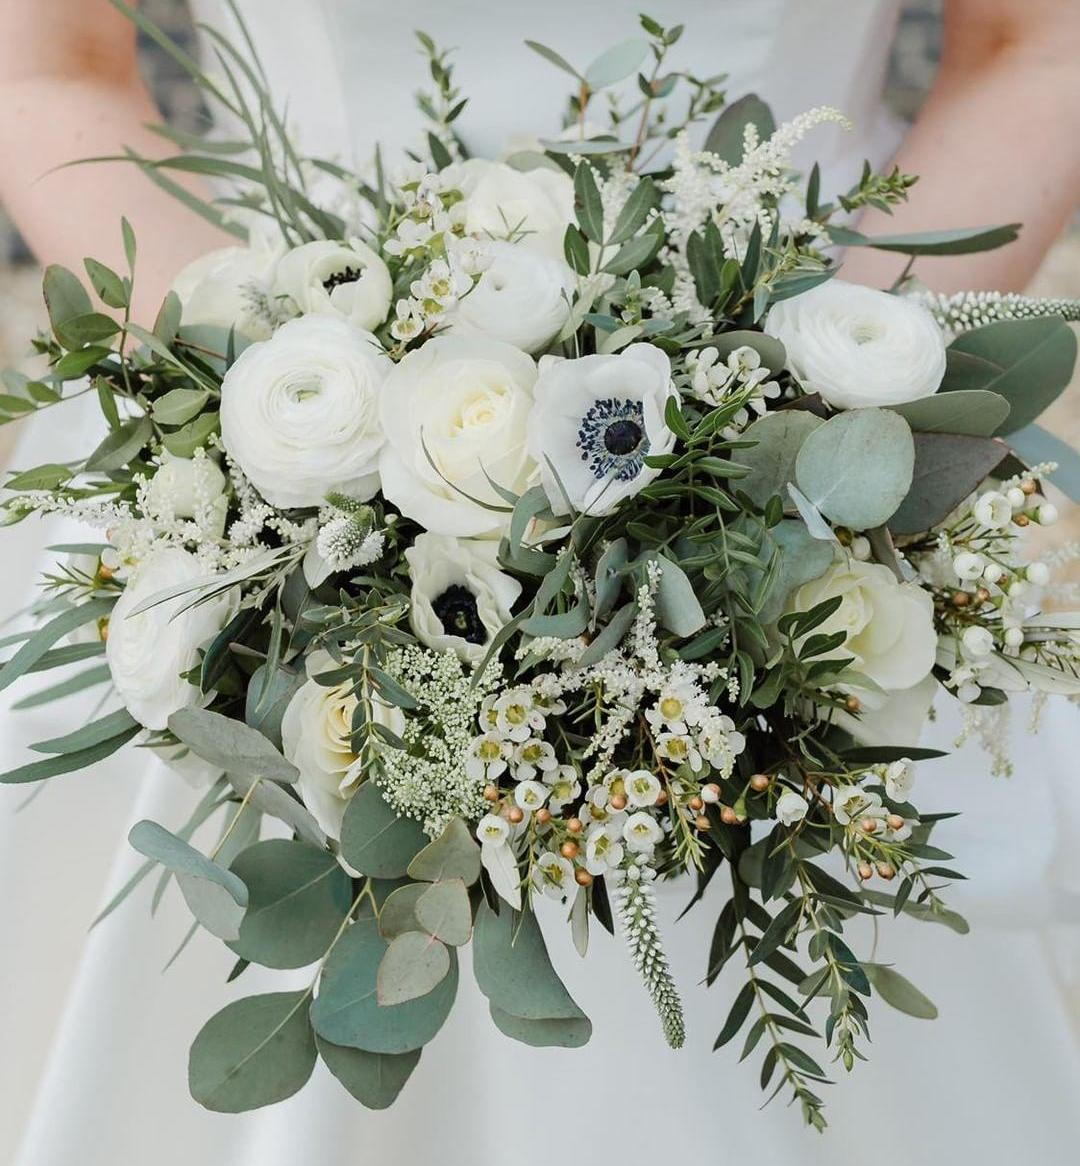 Darling Buds White and green bridal bouquet